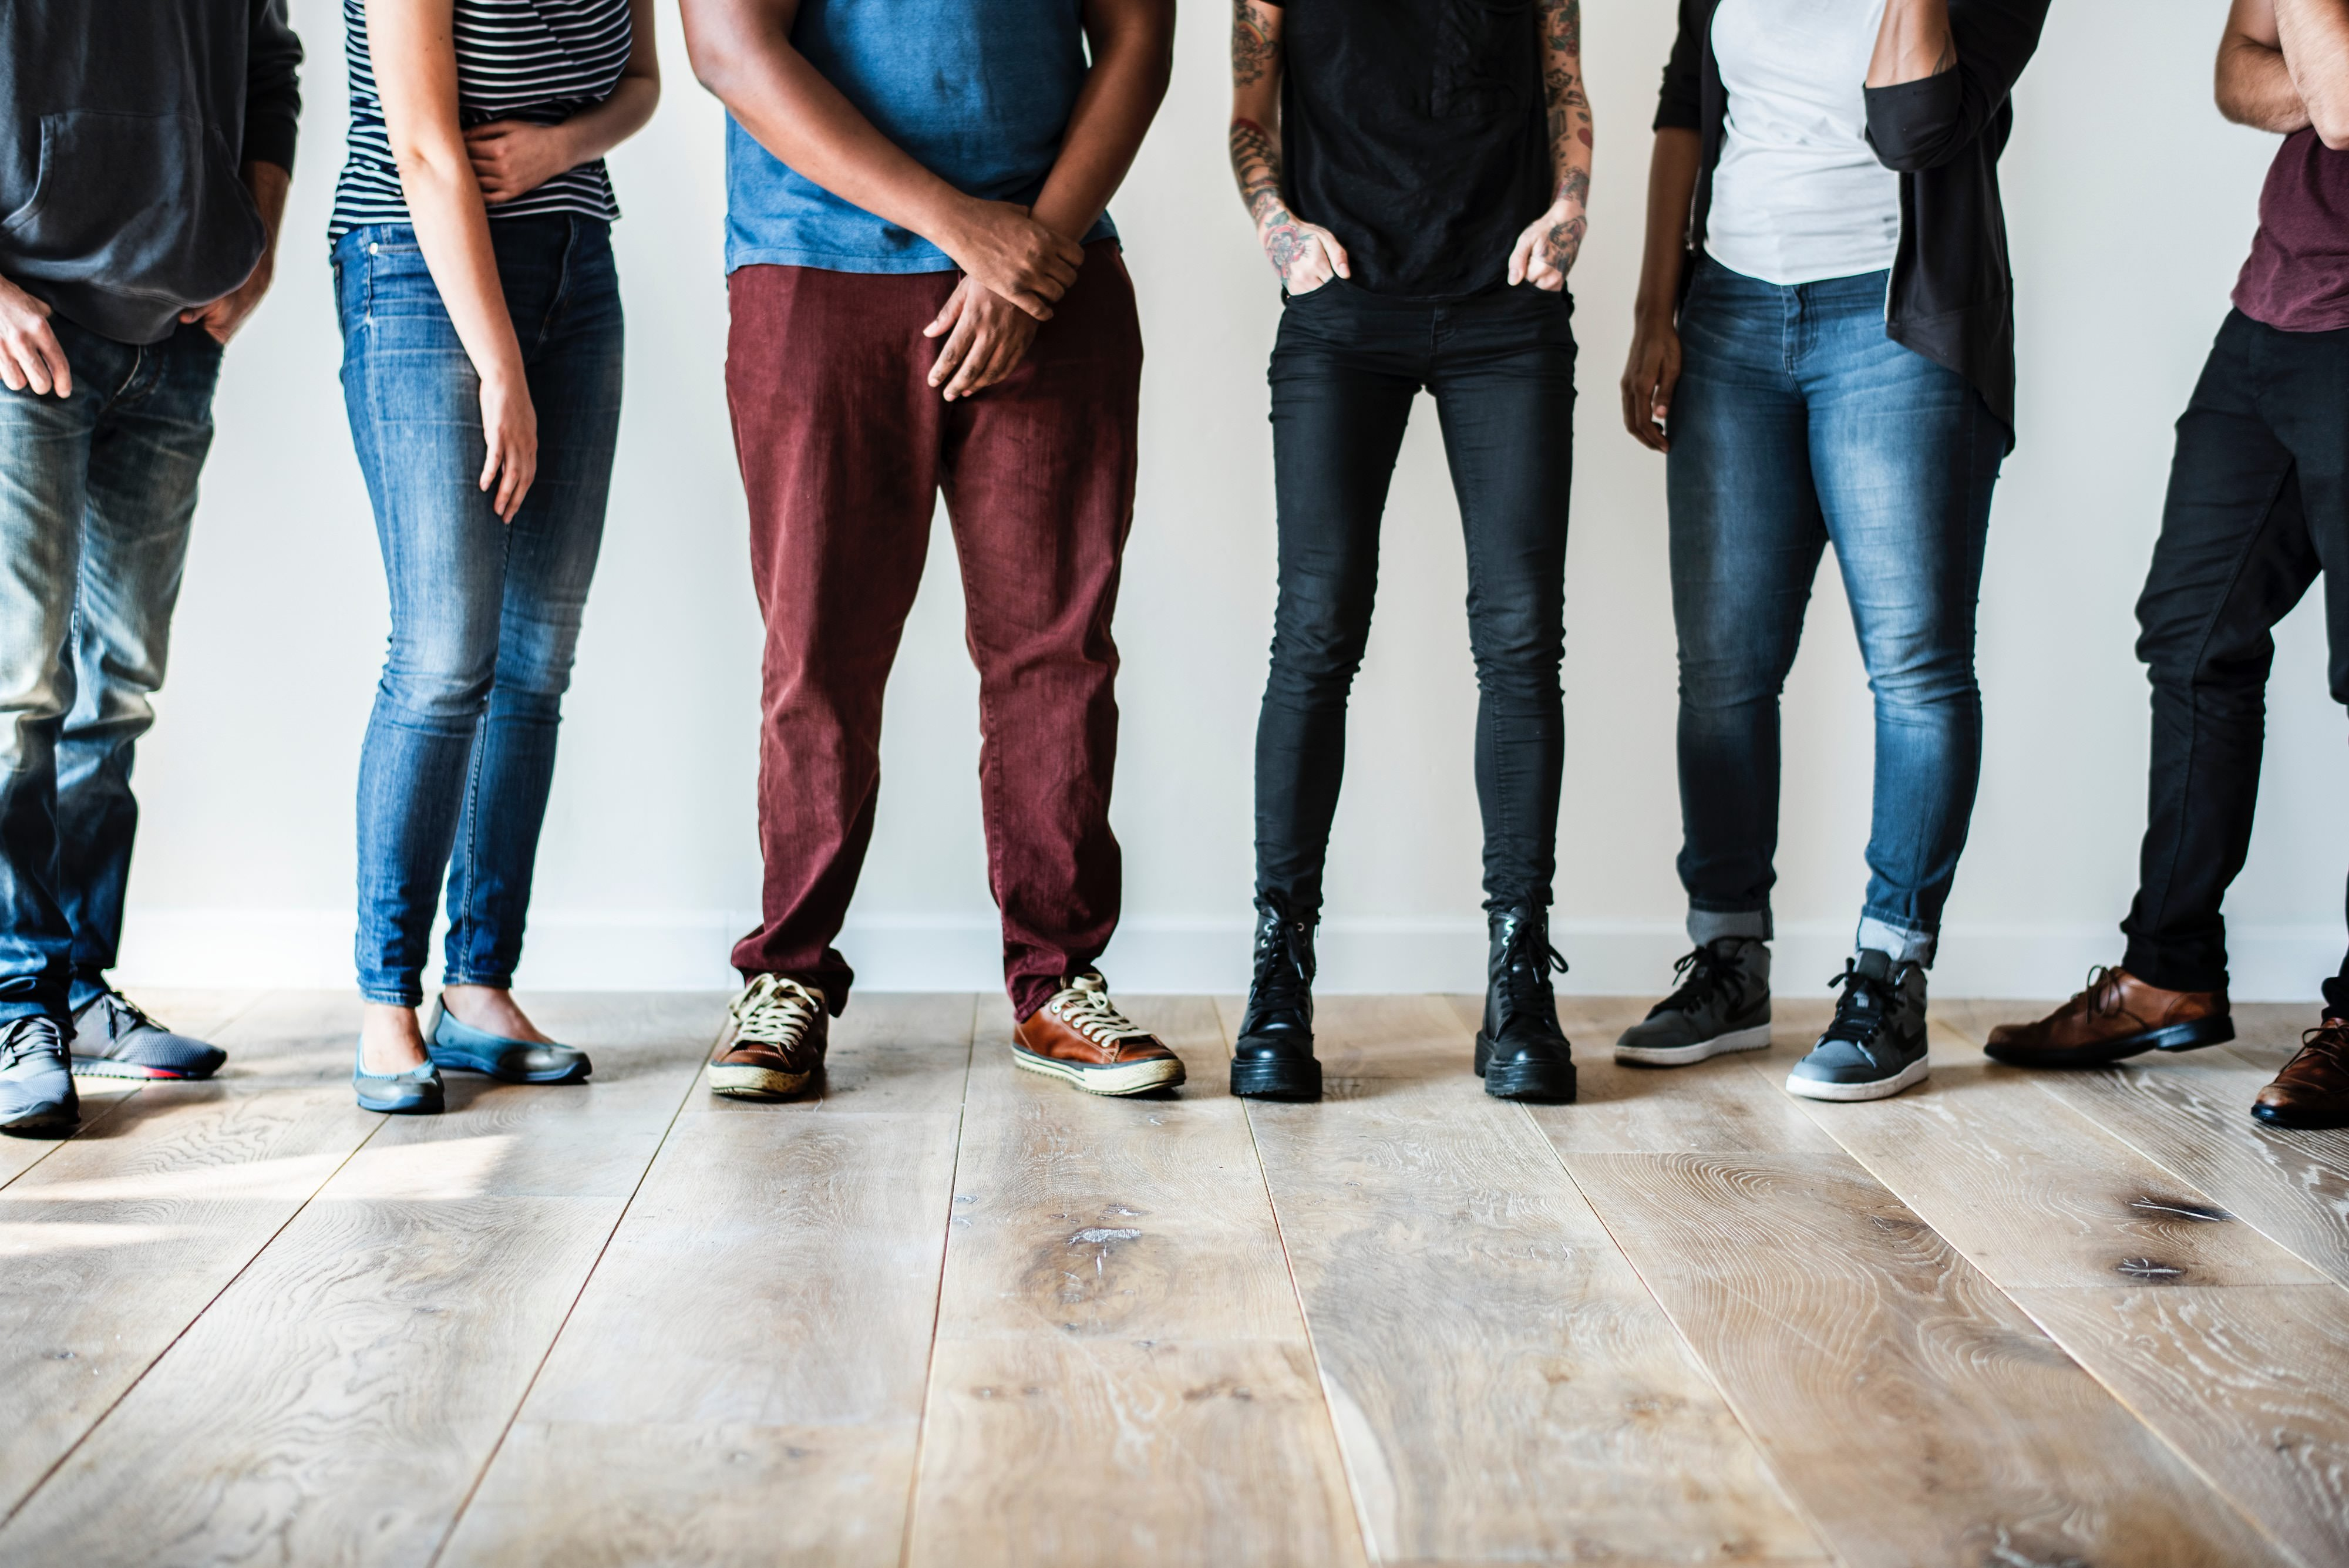 group of people standing on a hardwood floor